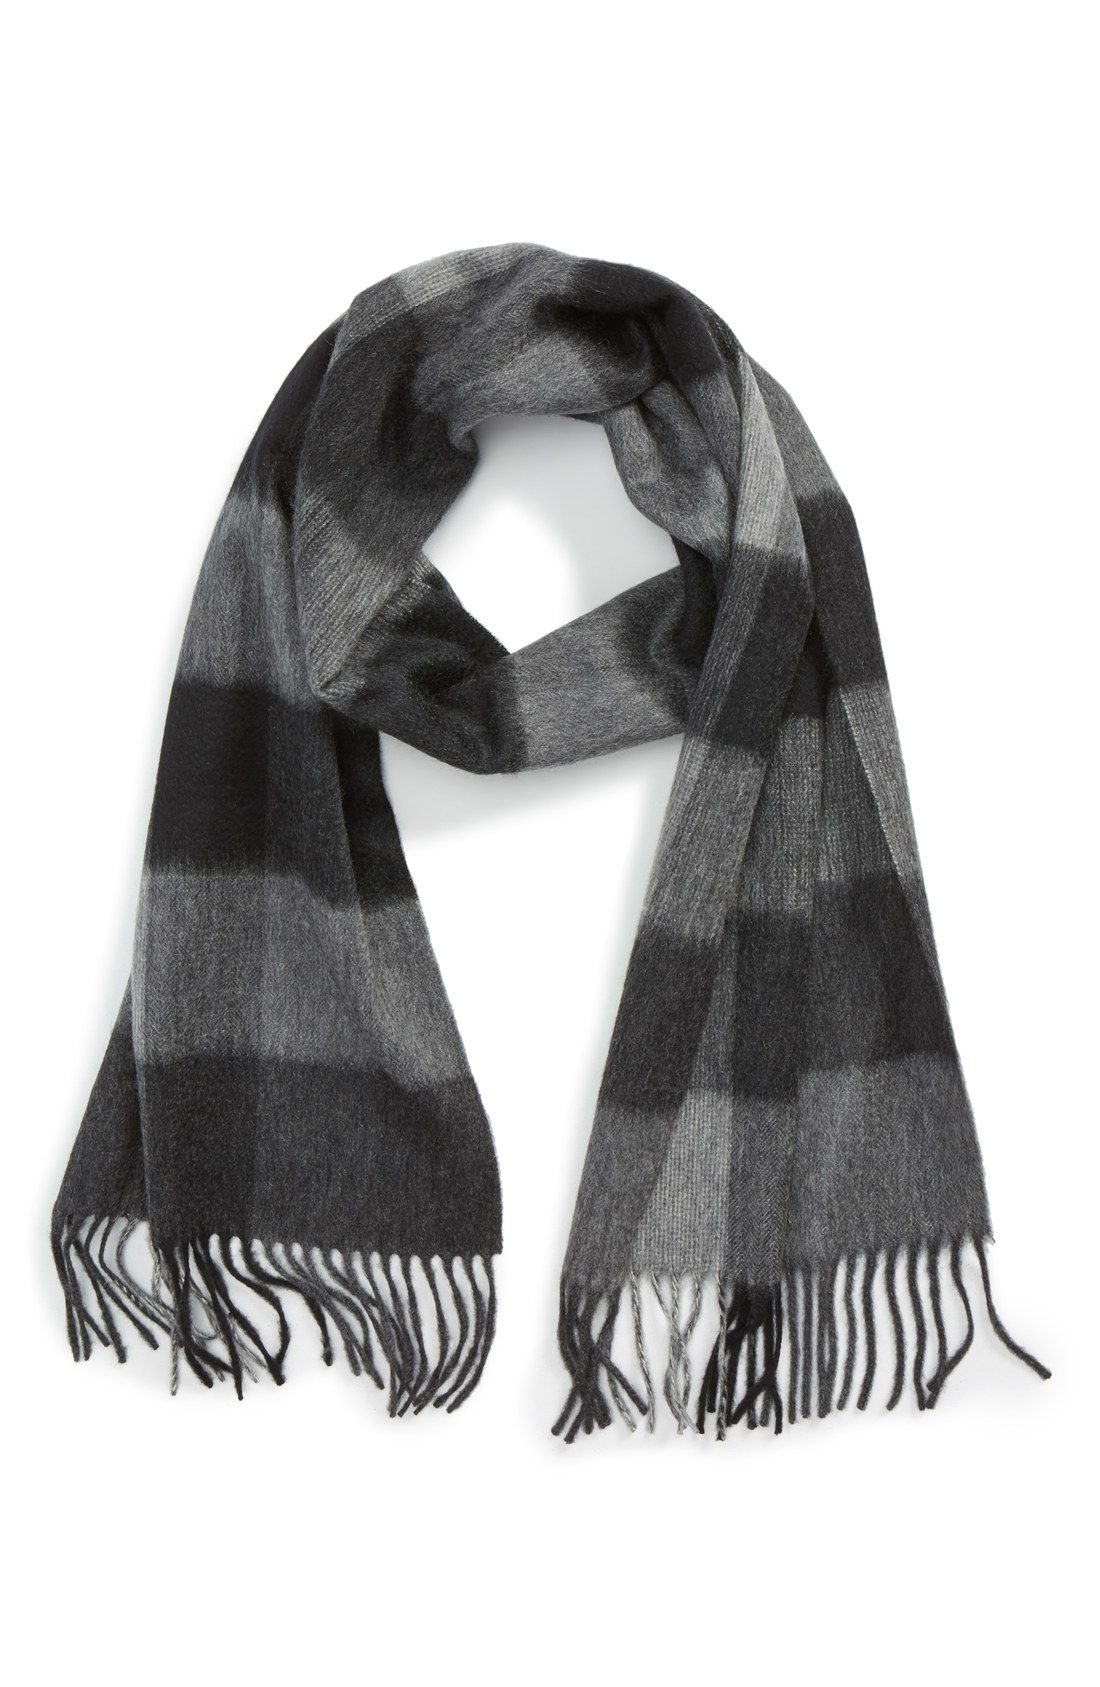 2532c2b324 Nordstrom 'New Buffalo' Cashmere Scarf | Sam in Rochester | Cashmere ...